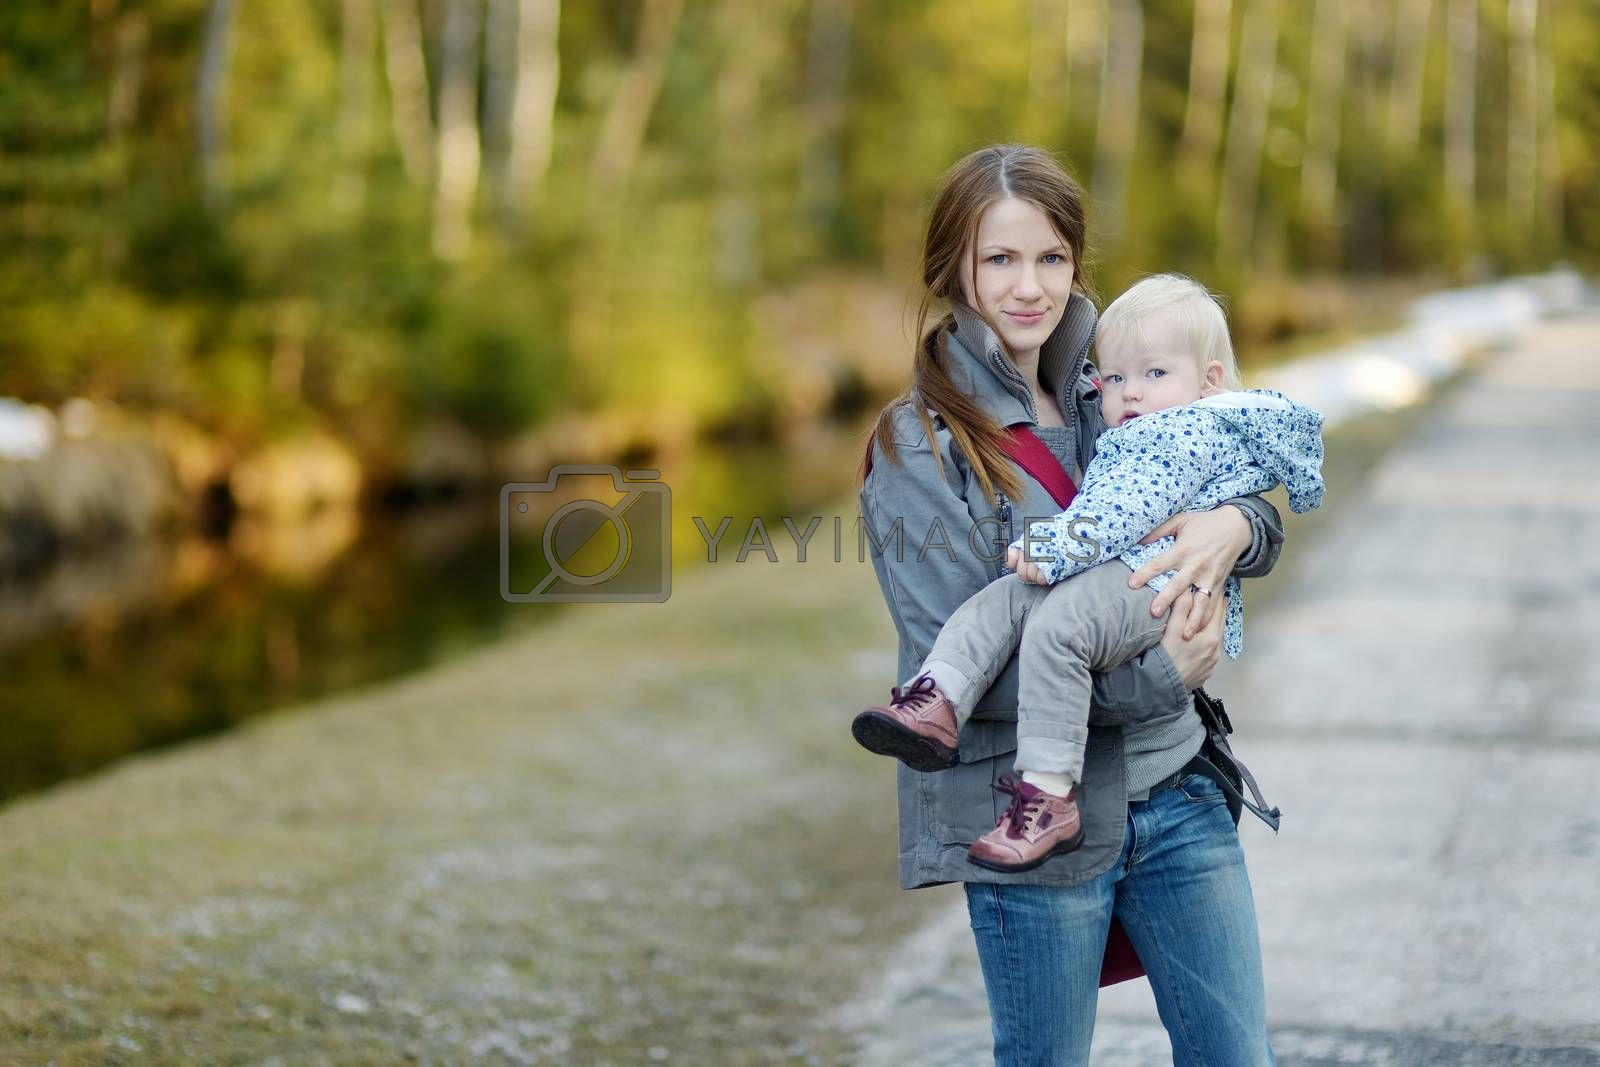 Adorable toddler girl in mothers hands